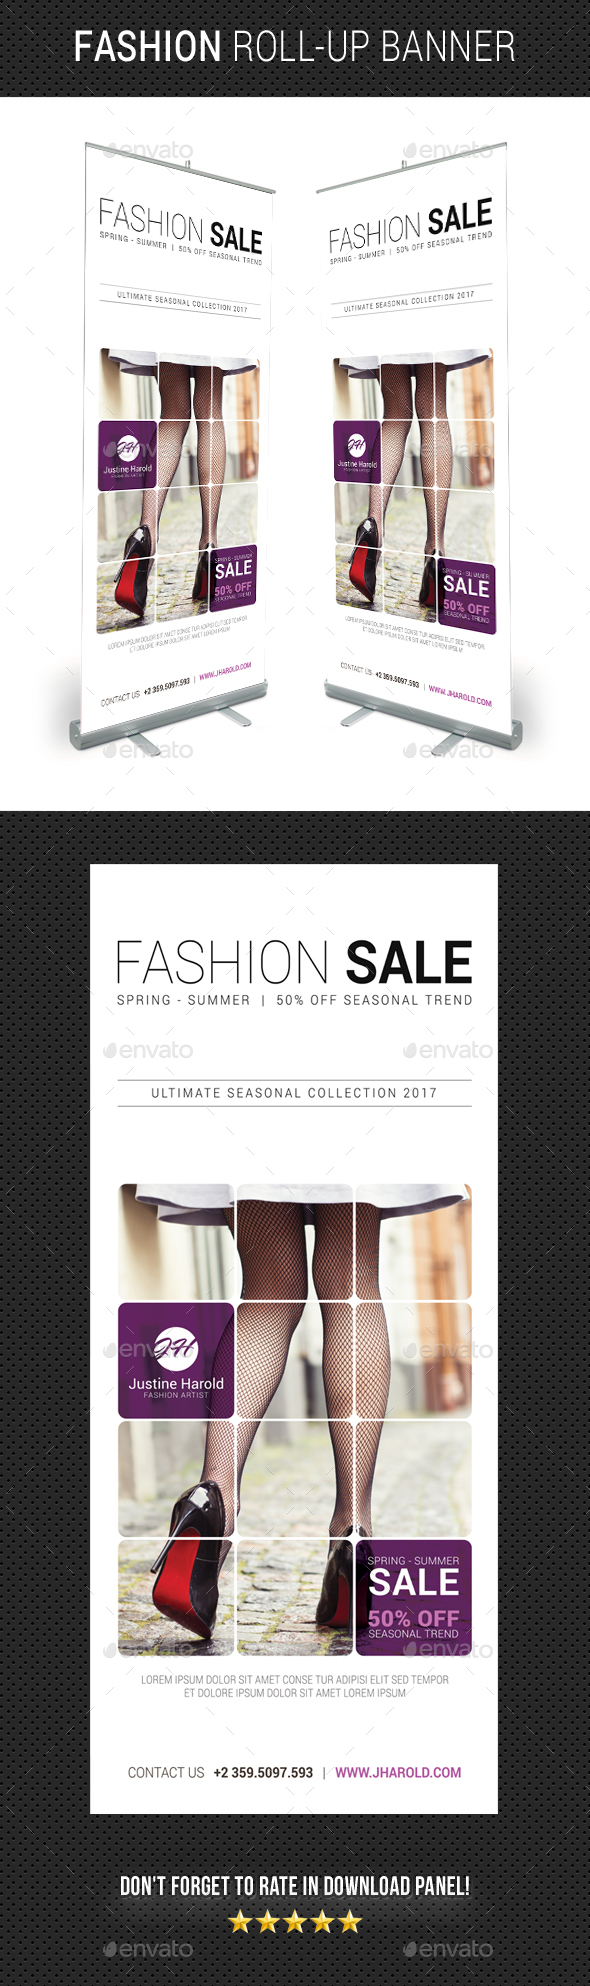 Fashion Roll-Up Banner 07 - Signage Print Templates